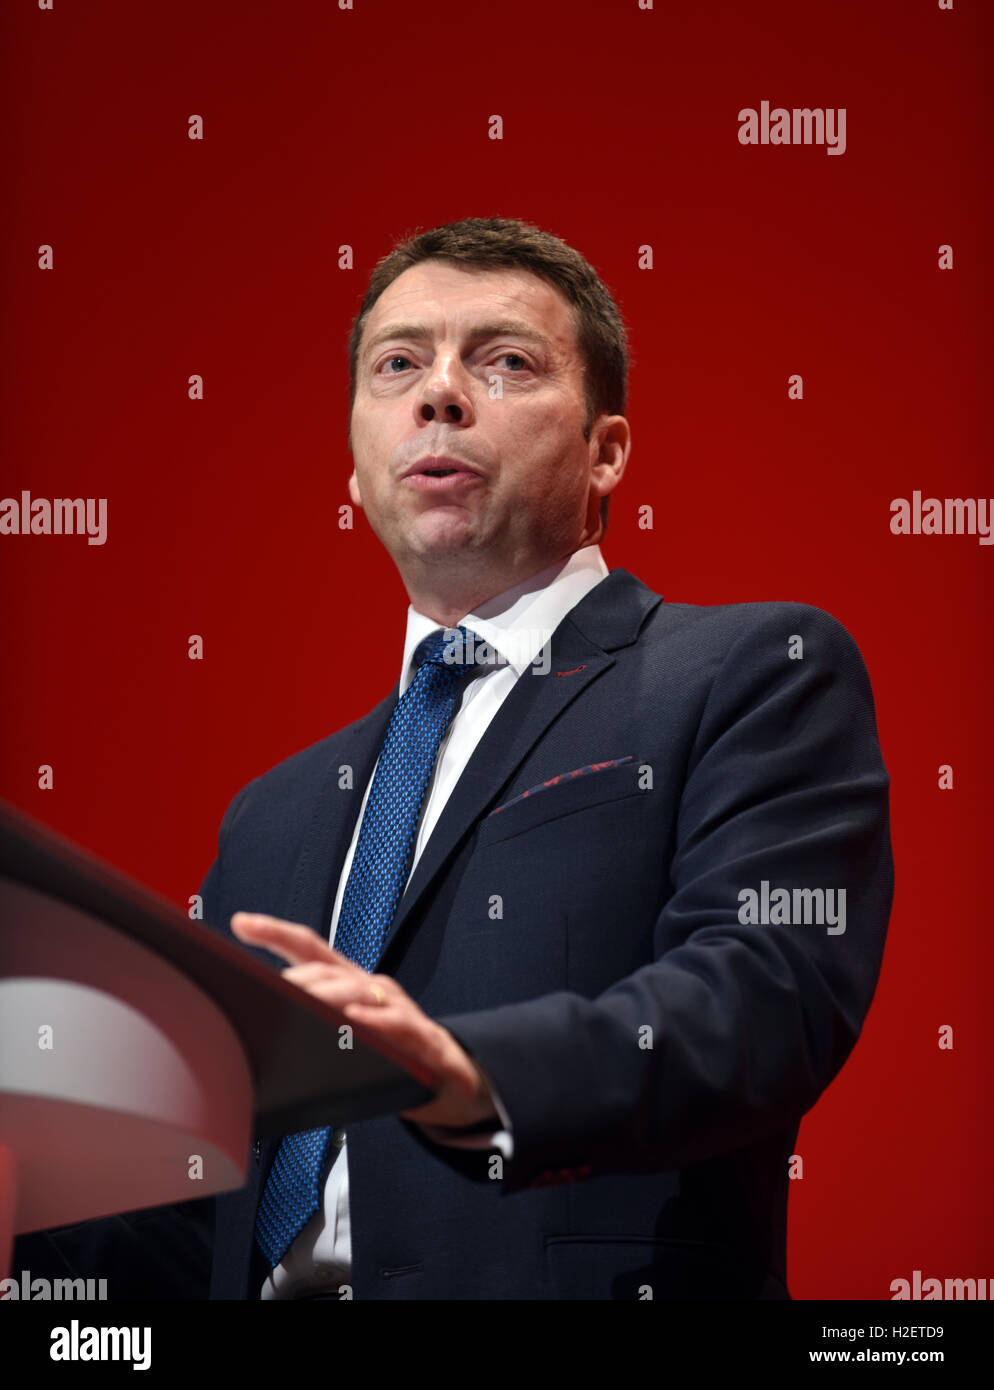 Iain McNicol General Secretary Labour Party speaking at the party's annual conference     © Della Batchelor/Alamy - Stock Image